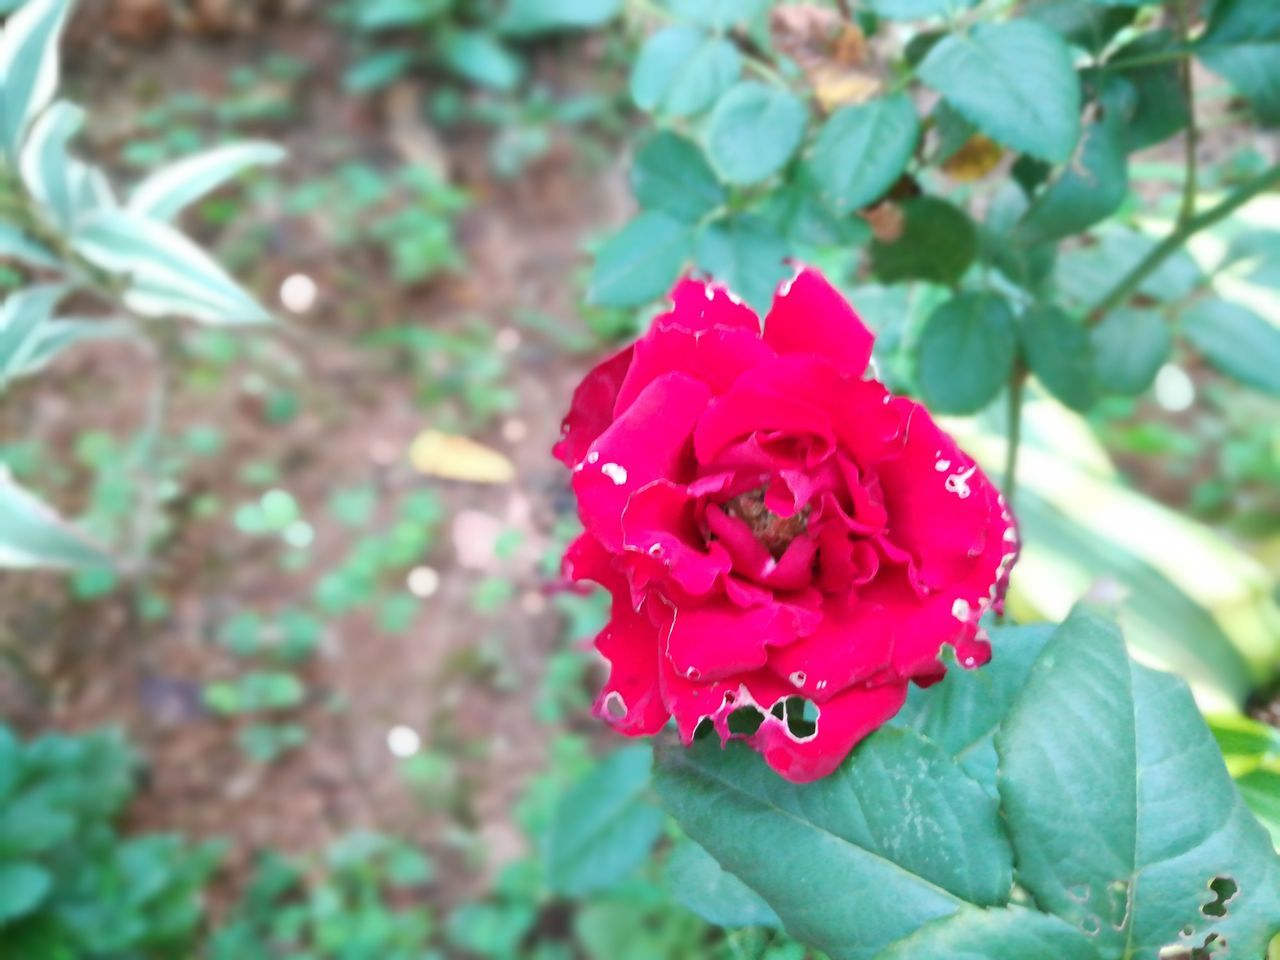 flower, petal, rose - flower, nature, fragility, beauty in nature, growth, flower head, red, leaf, pink color, no people, focus on foreground, plant, day, green color, outdoors, freshness, blooming, close-up